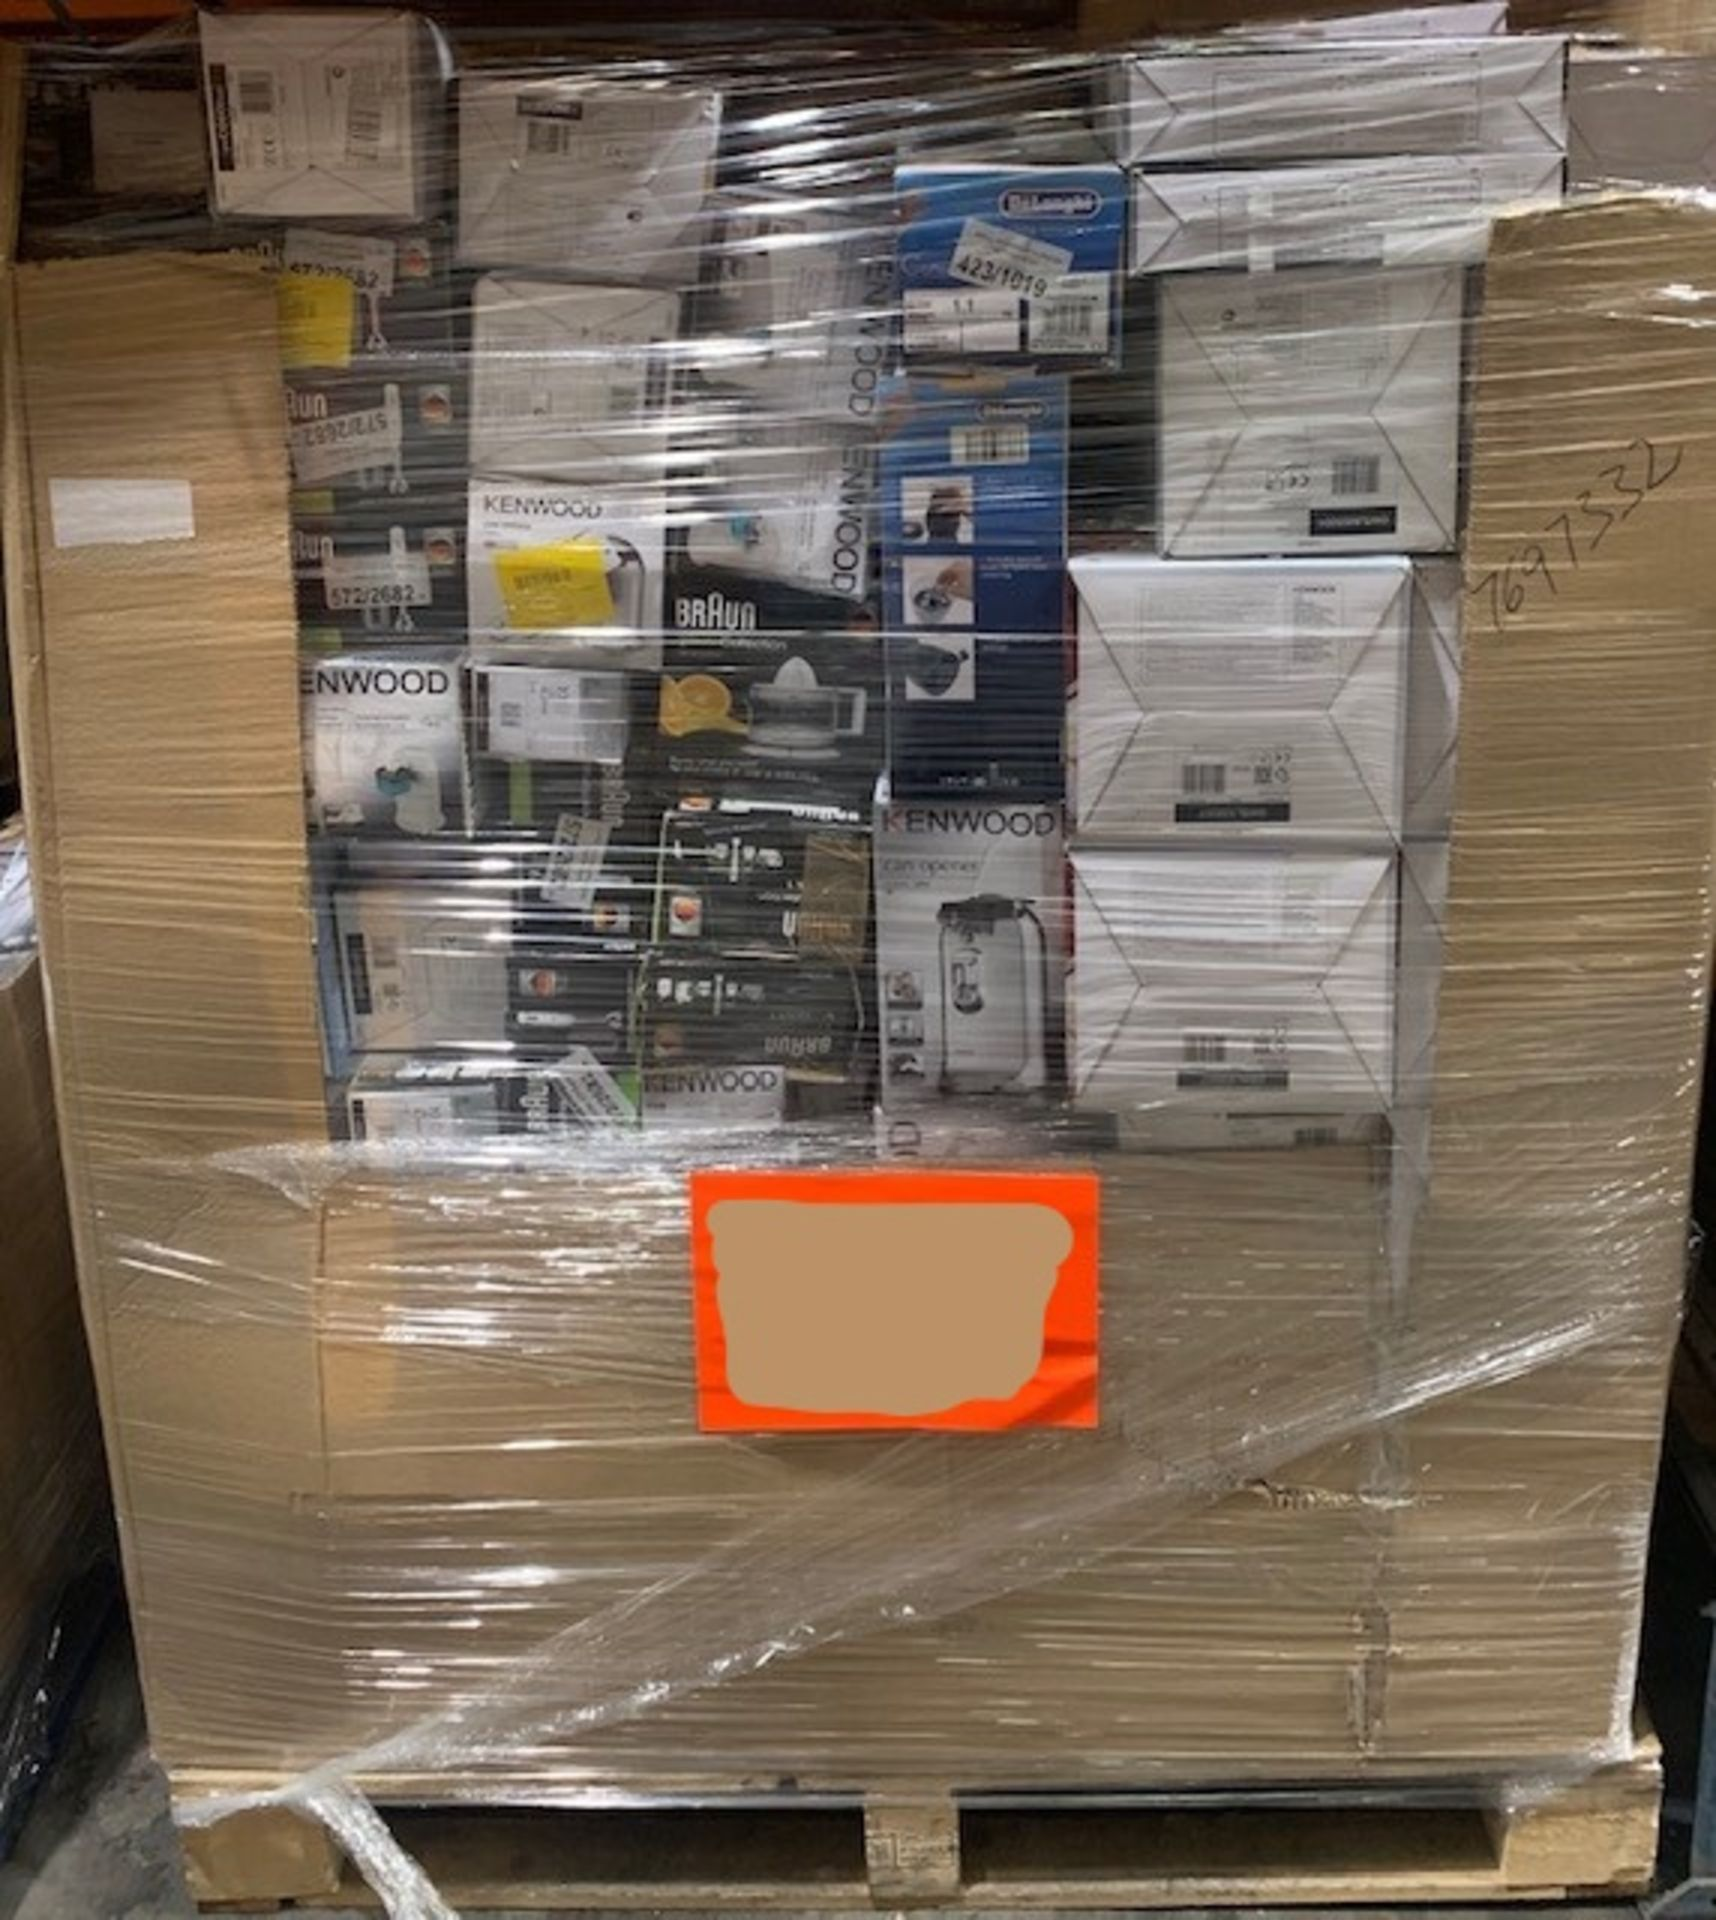 Lot 2 - 1 Mixed Pallet containing 225 items including Kenwood, Delonghi & Braun stock. Approx RRP £4,699.28